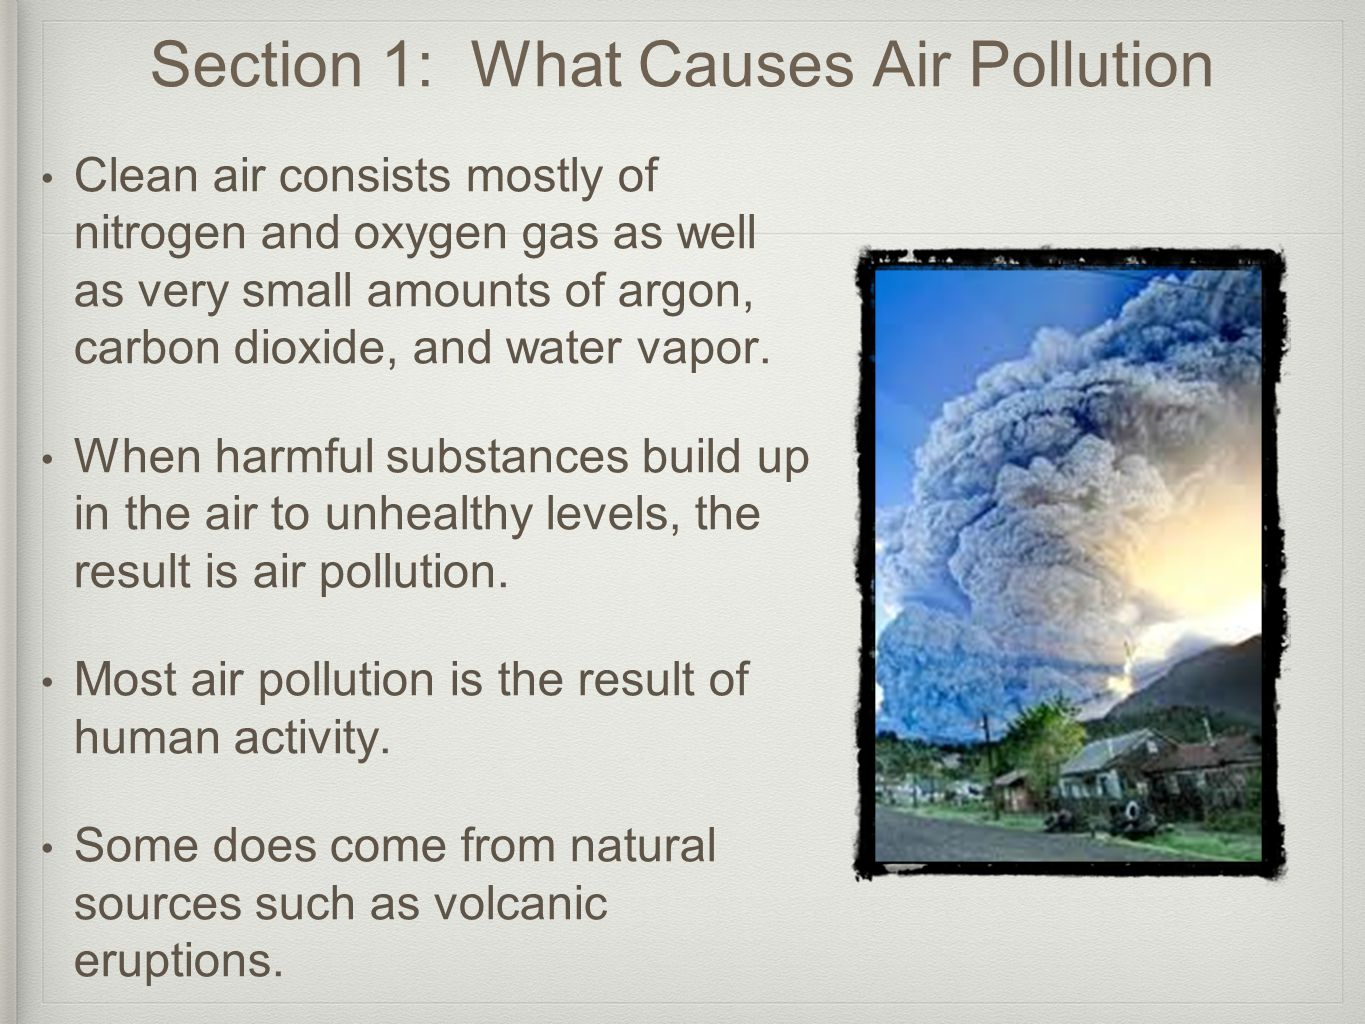 Section 1: What Causes Air Pollution